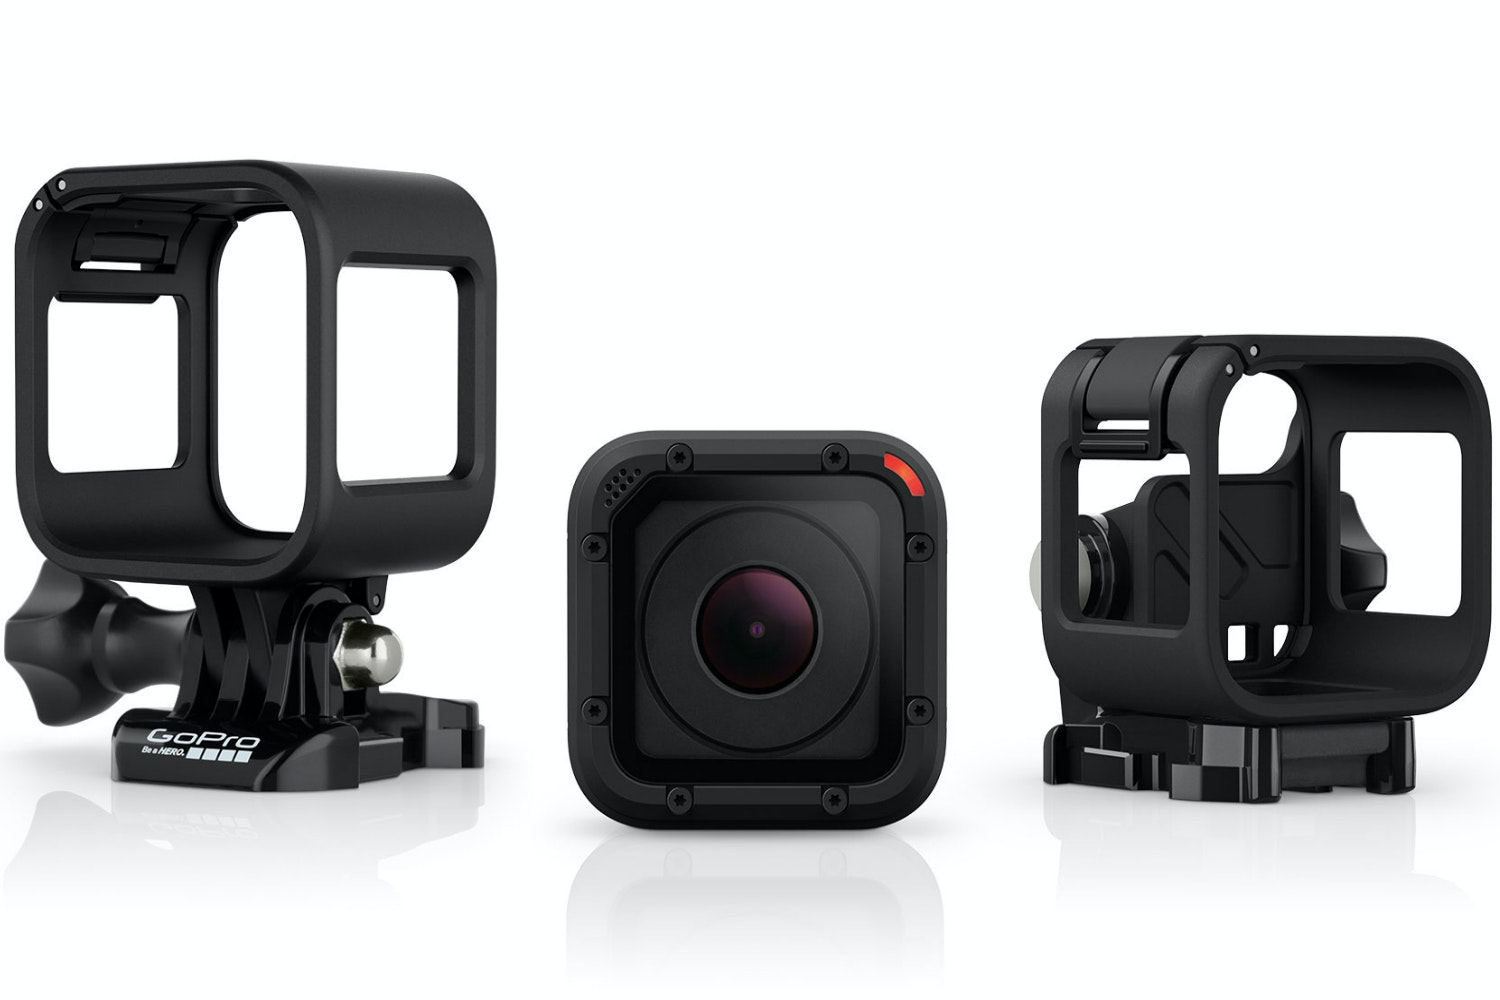 GoPro Hero4 The Frames